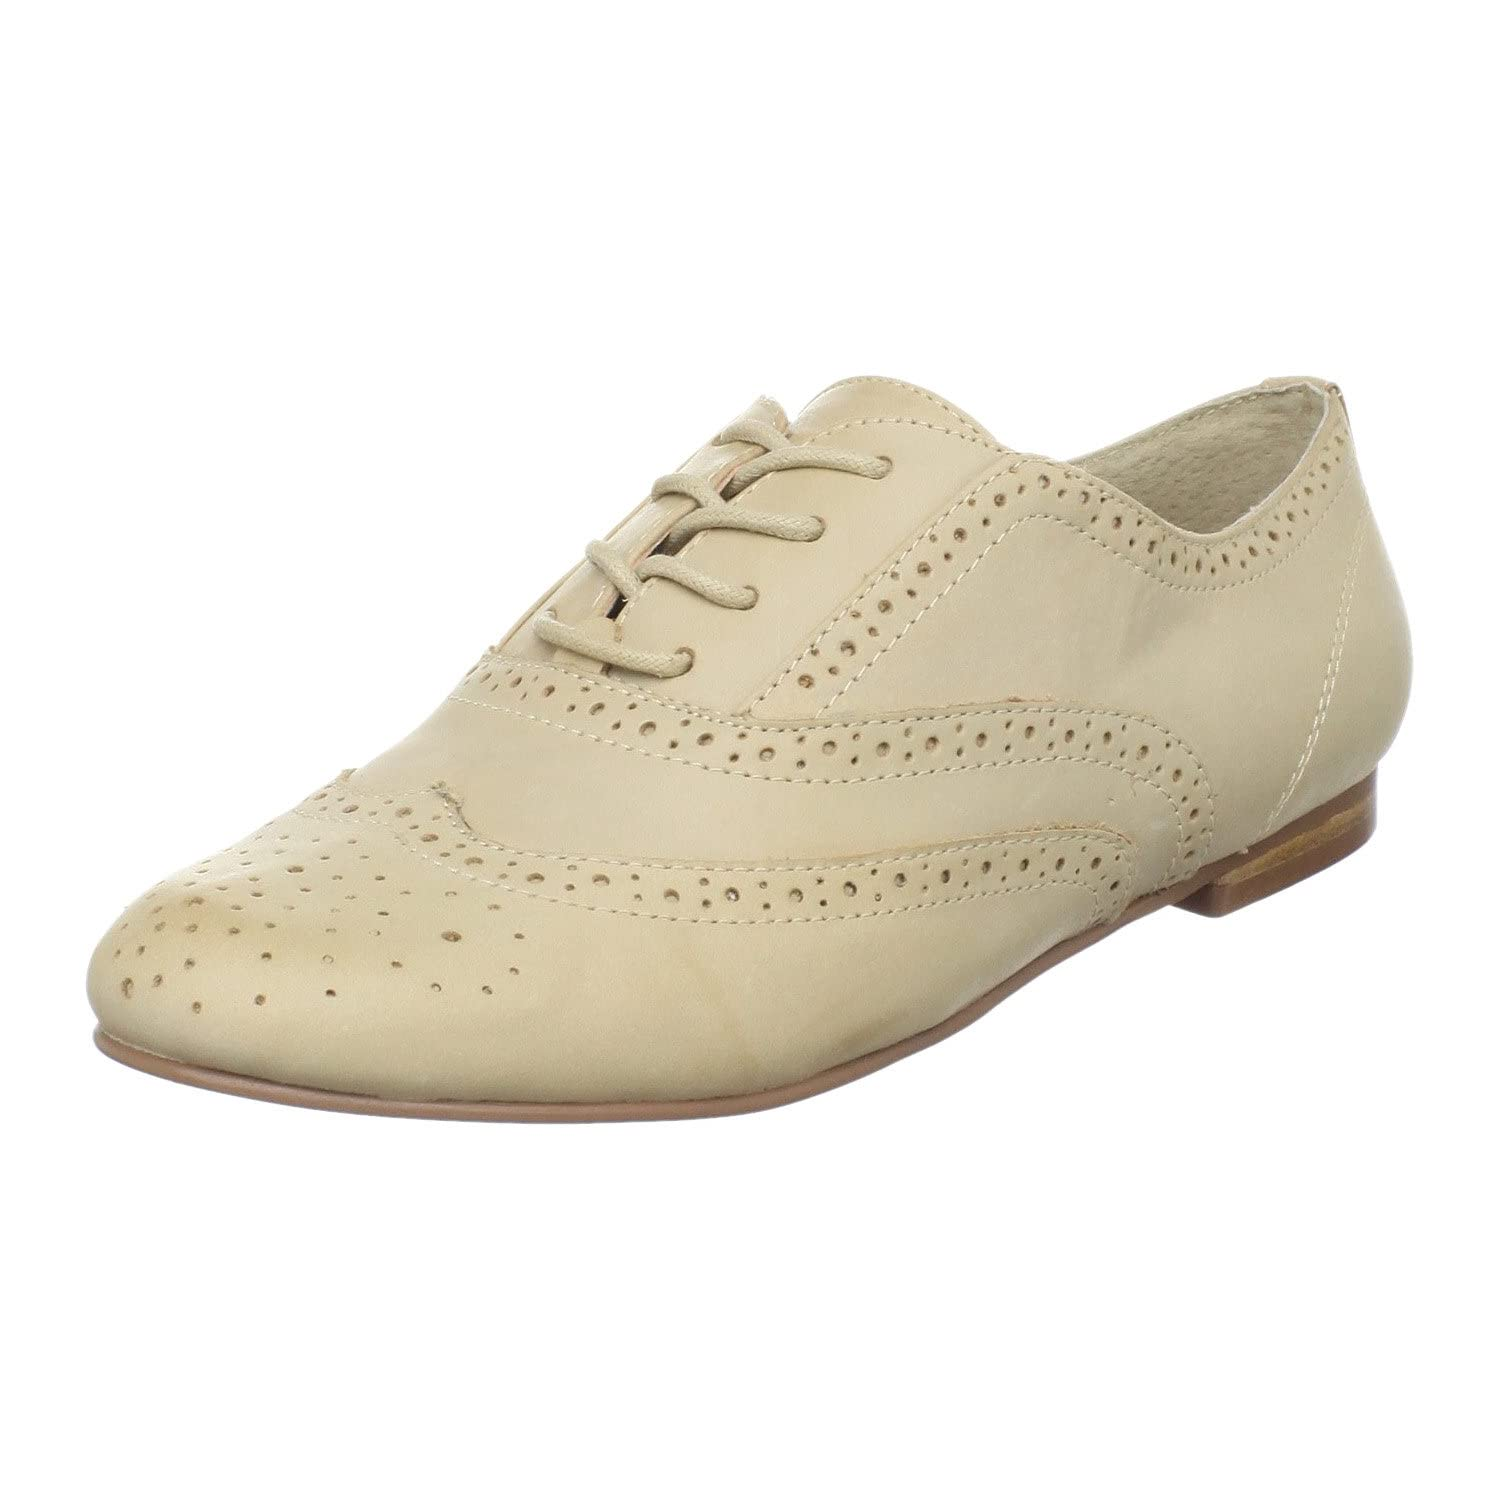 Steve Madden - Trouser Oxford :  nude oxfords nude shoes flats shoes